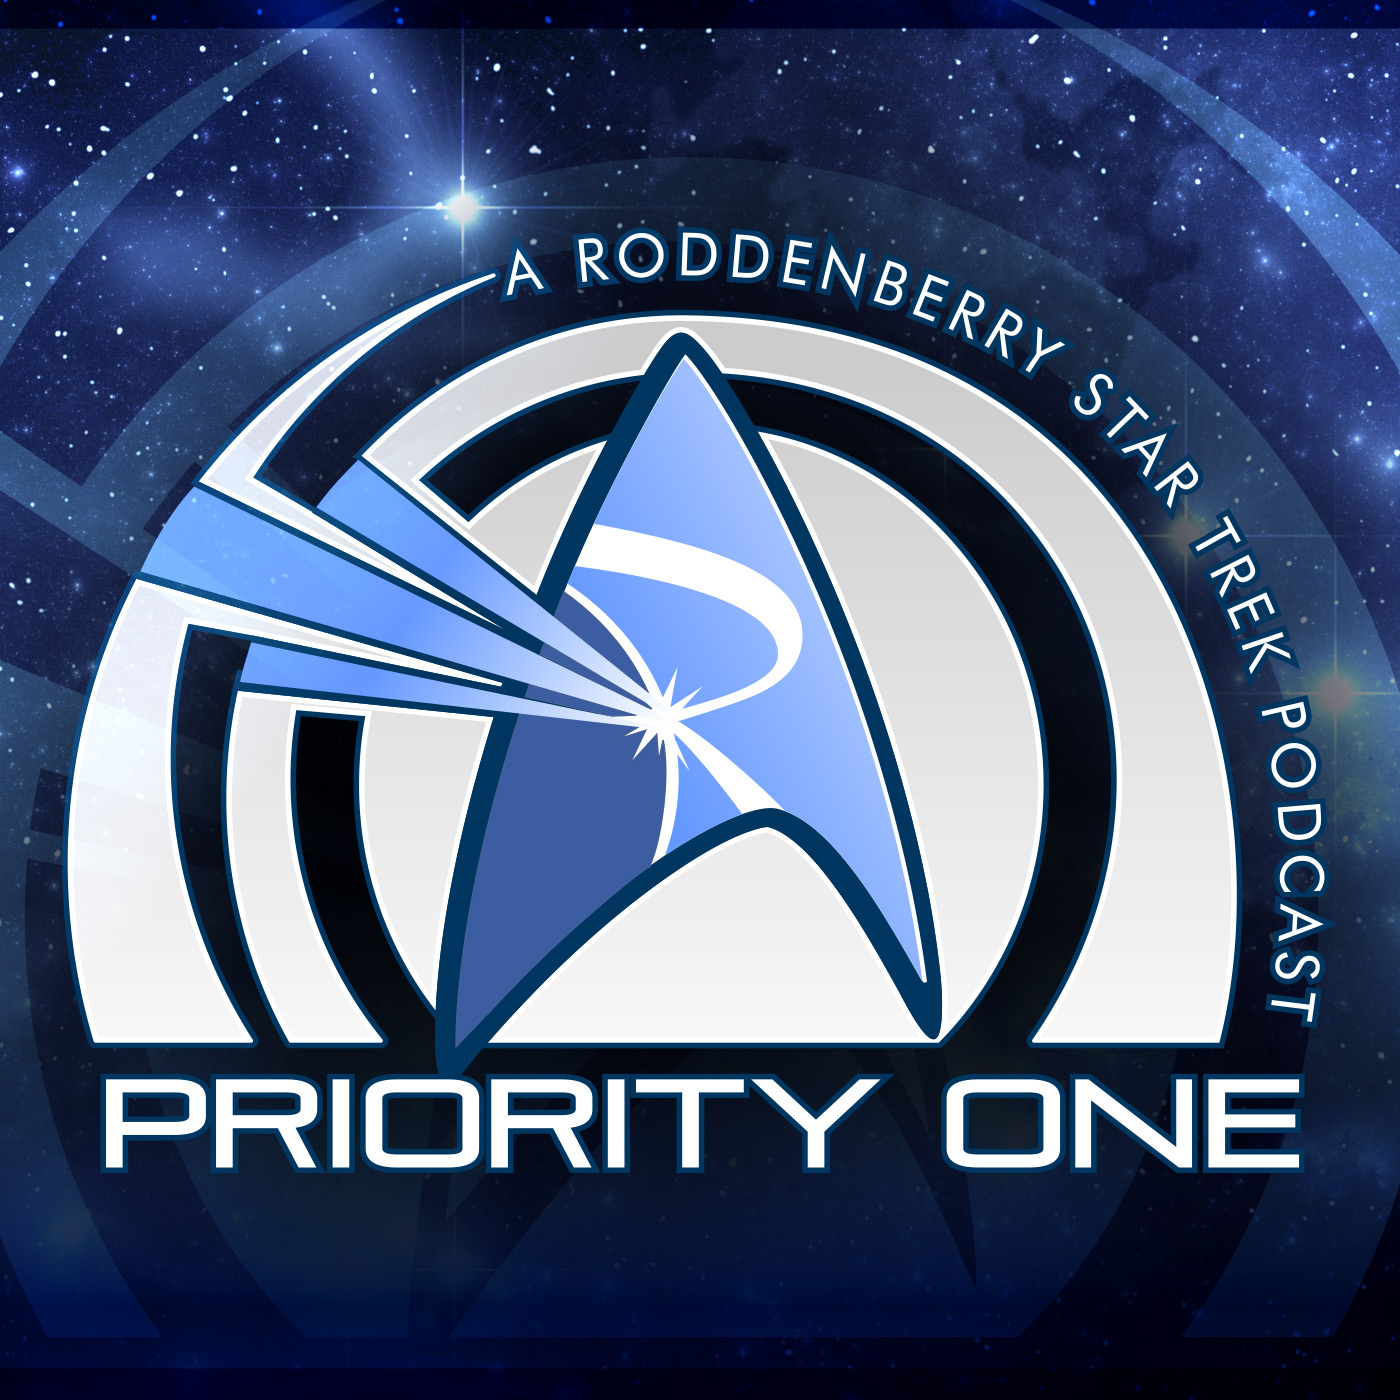 Artwork for 400 - Celebration at Cryptic Studios | Priority One: A Roddenberry Star Trek Podcast